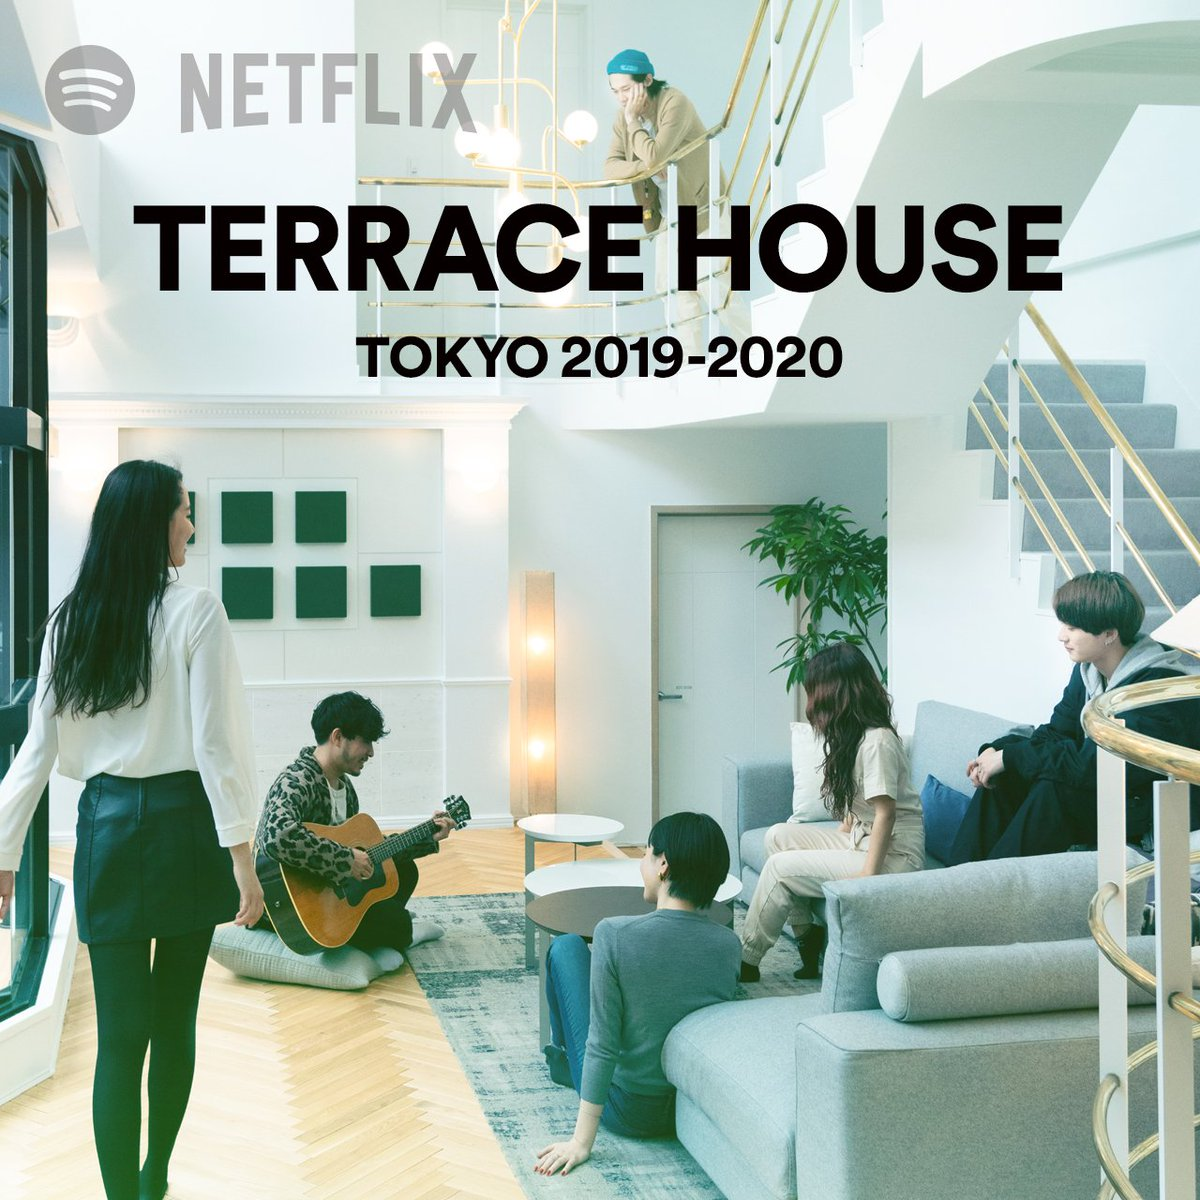 Netflix's Terrace House puts a fresh spin on reality tv shows.